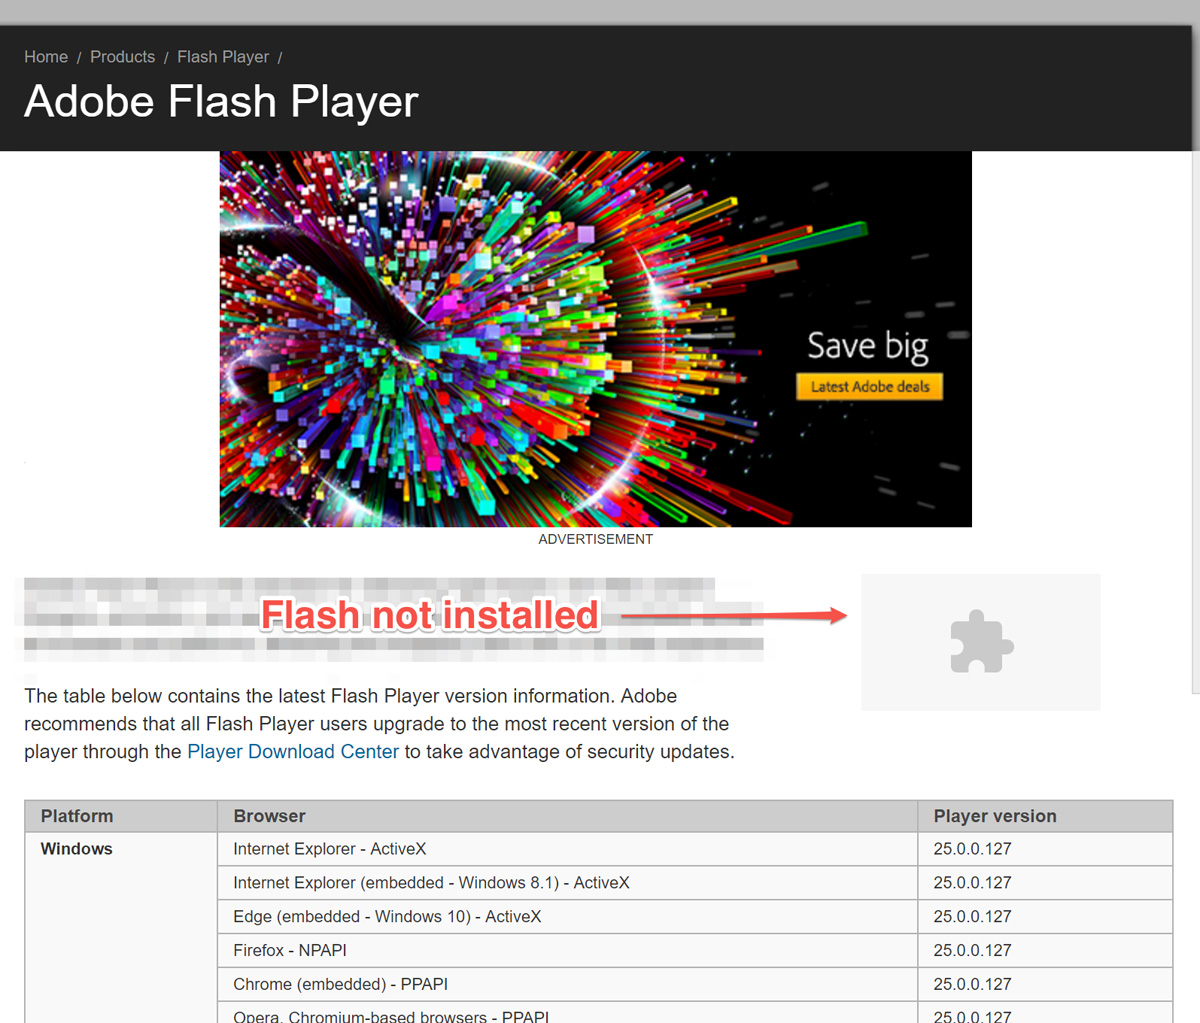 Installing a Flash Player in Vivaldi | Vivaldi Browser Help